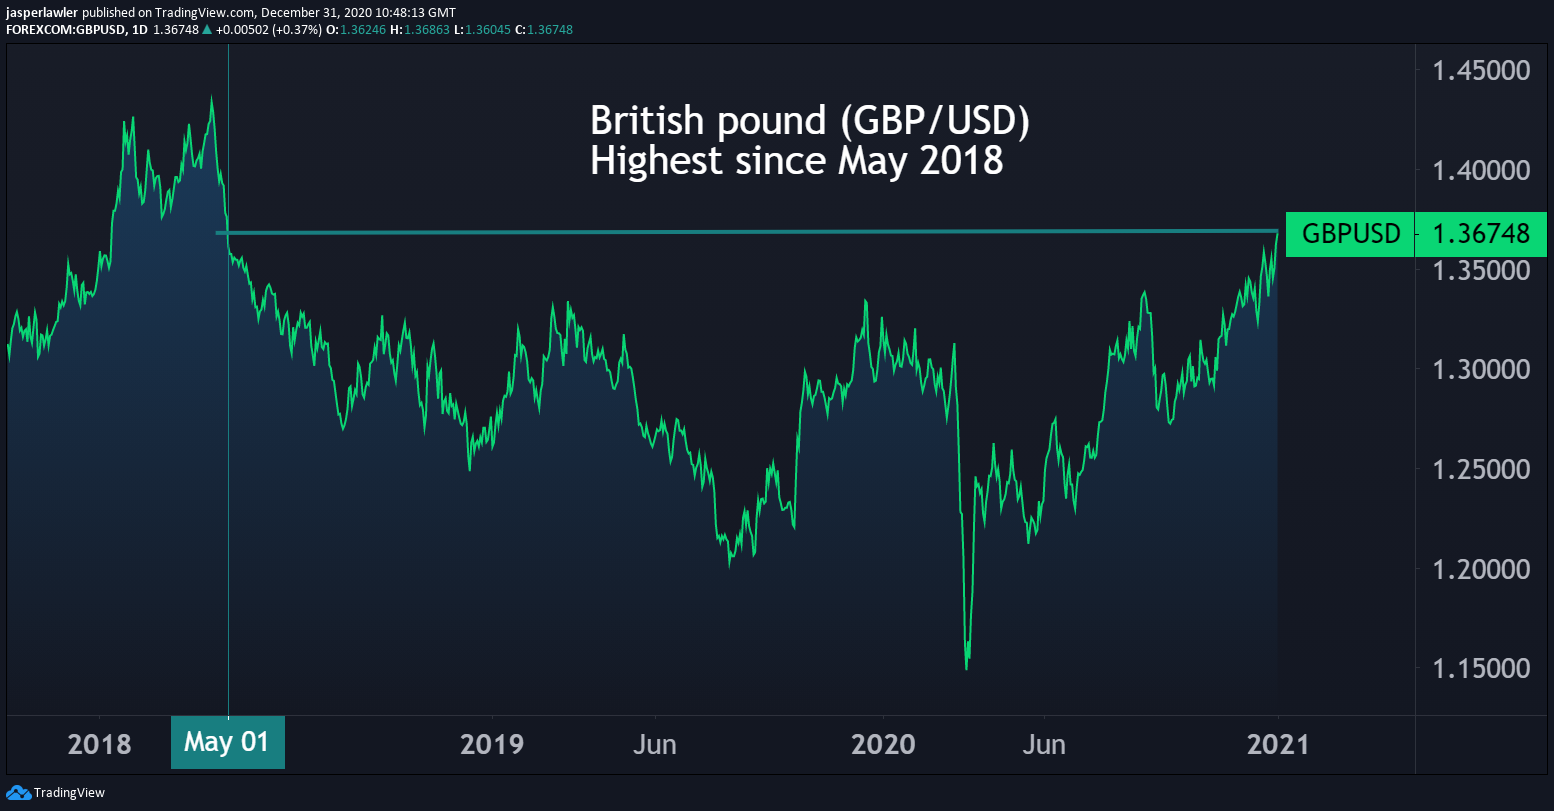 British pound highest since 2018 after Brexit deal agreed